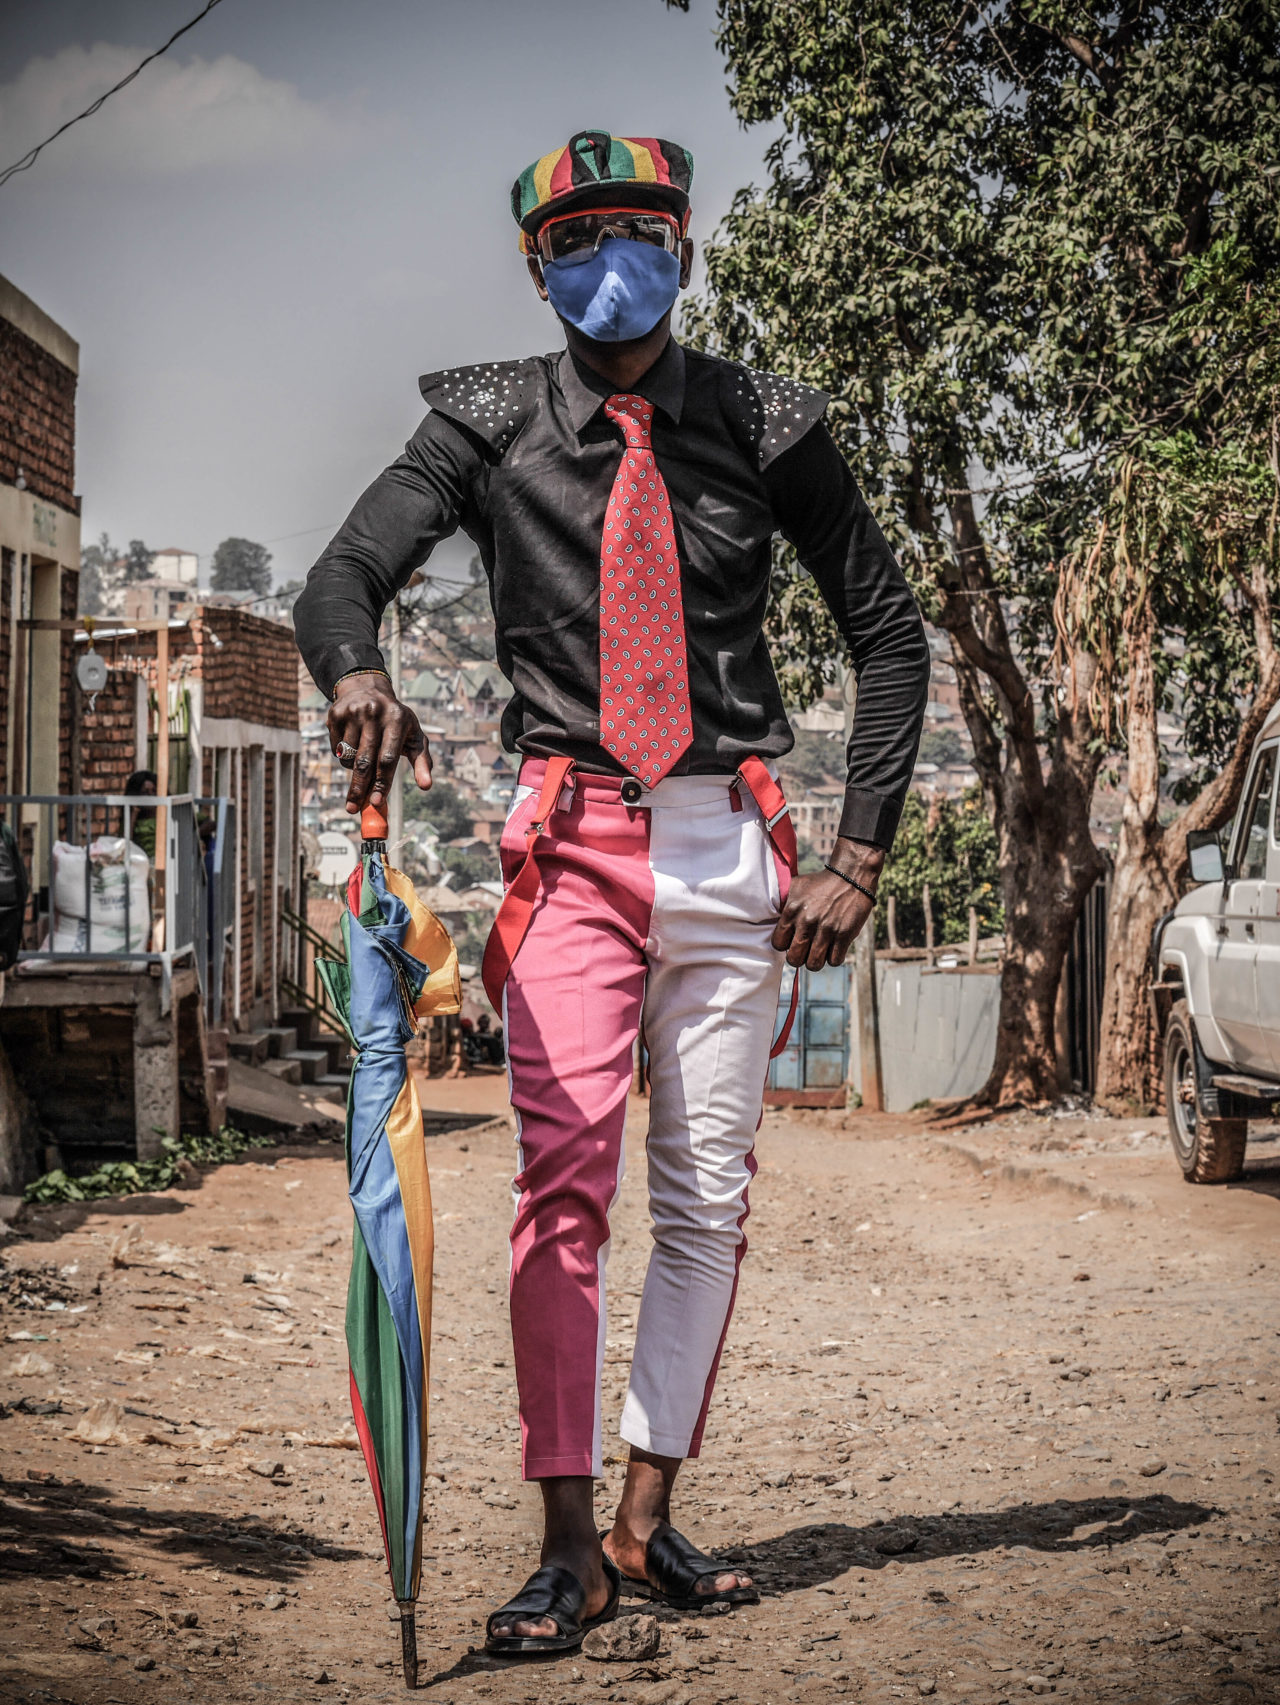 Bukavu, DRC, August 2020 Sapeur Chrispin Floribert Sumaili, 25, shows off his style on a street in the eastern Congolese city of Bukavu this month.  Raissa Karama Rwizibuka for Fondation Carmignac